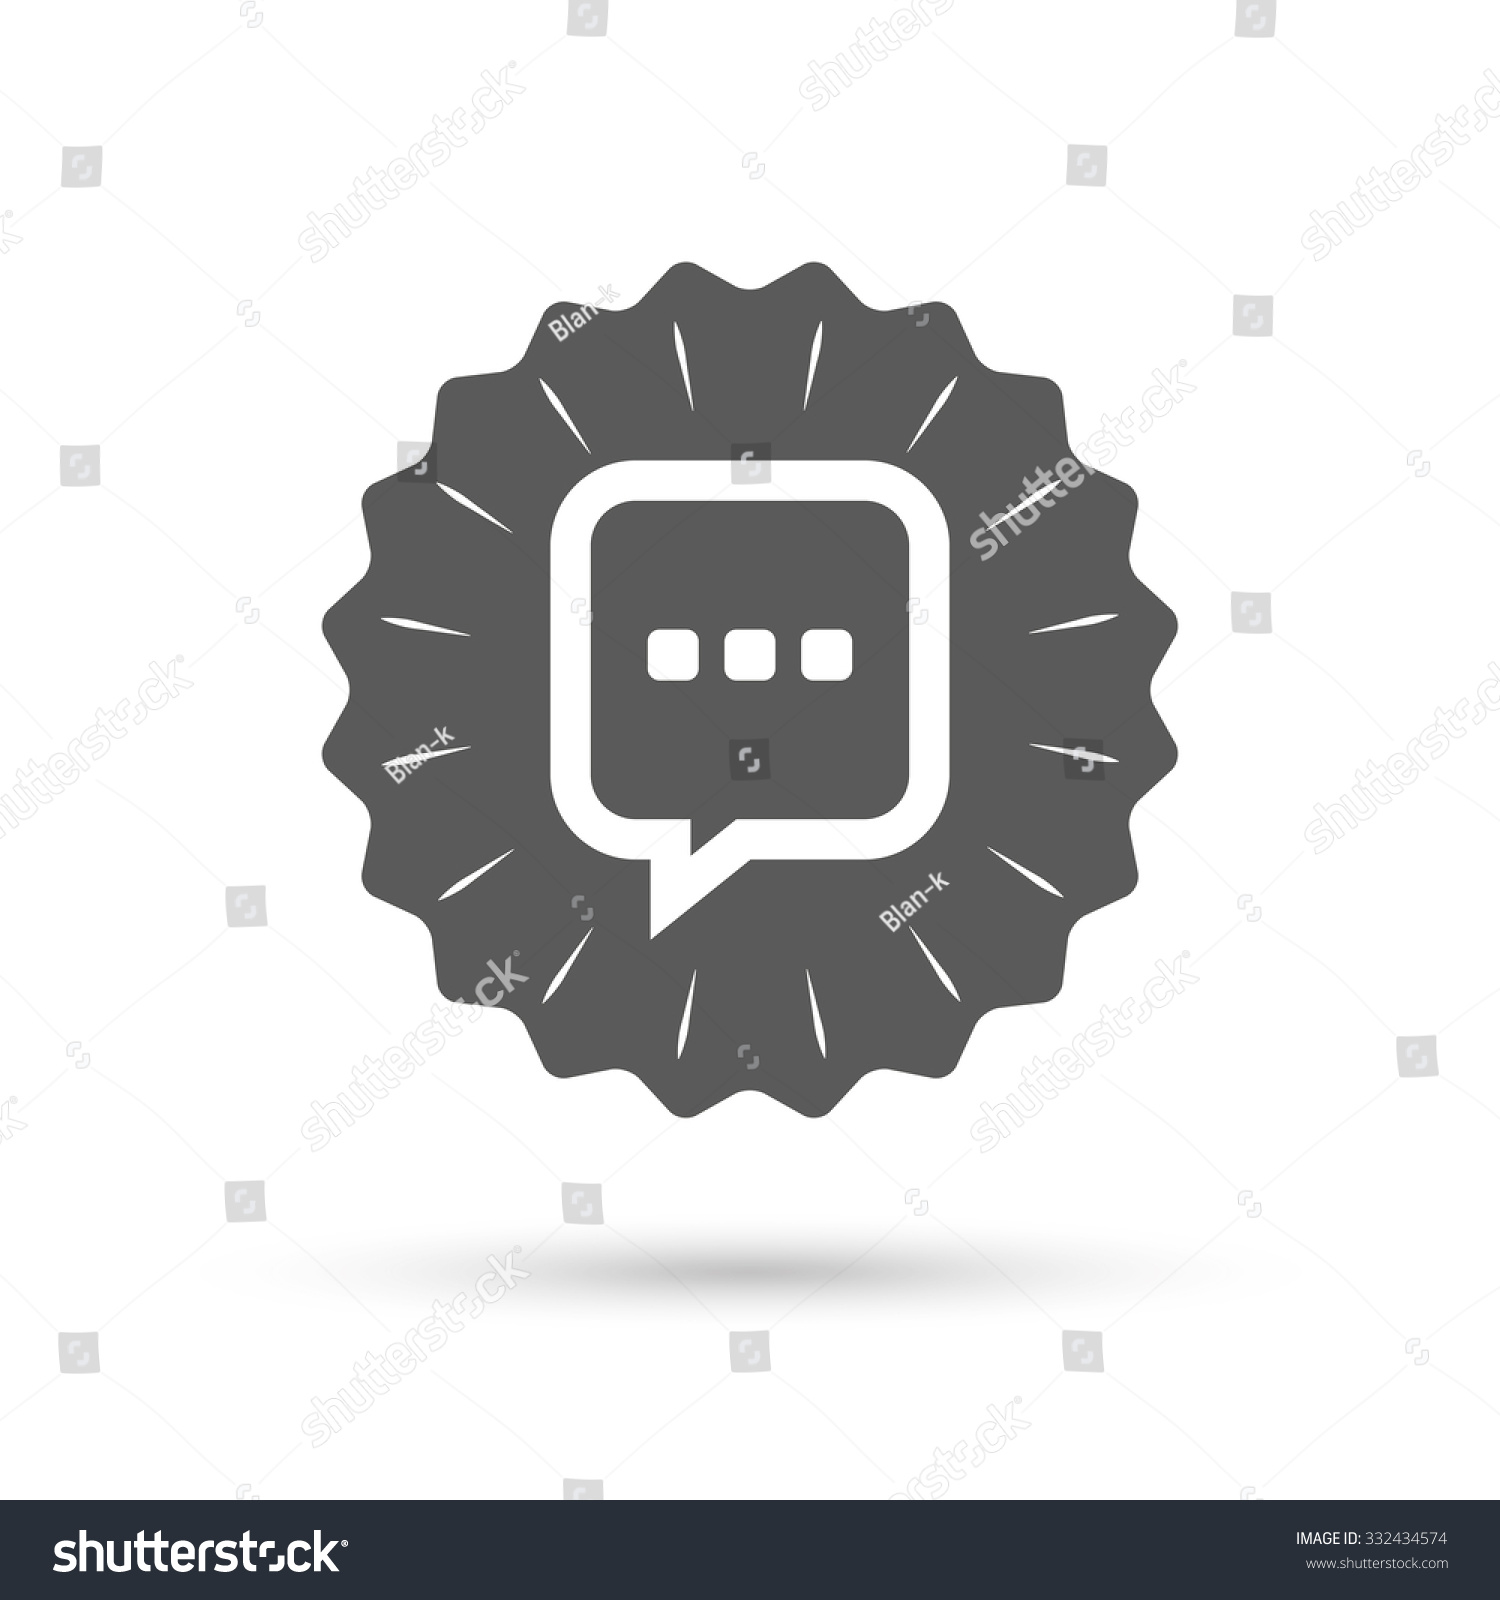 Vintage emblem medal chat sign icon stock vector 332434574 vintage emblem medal chat sign icon speech bubble with three dots symbol communication biocorpaavc